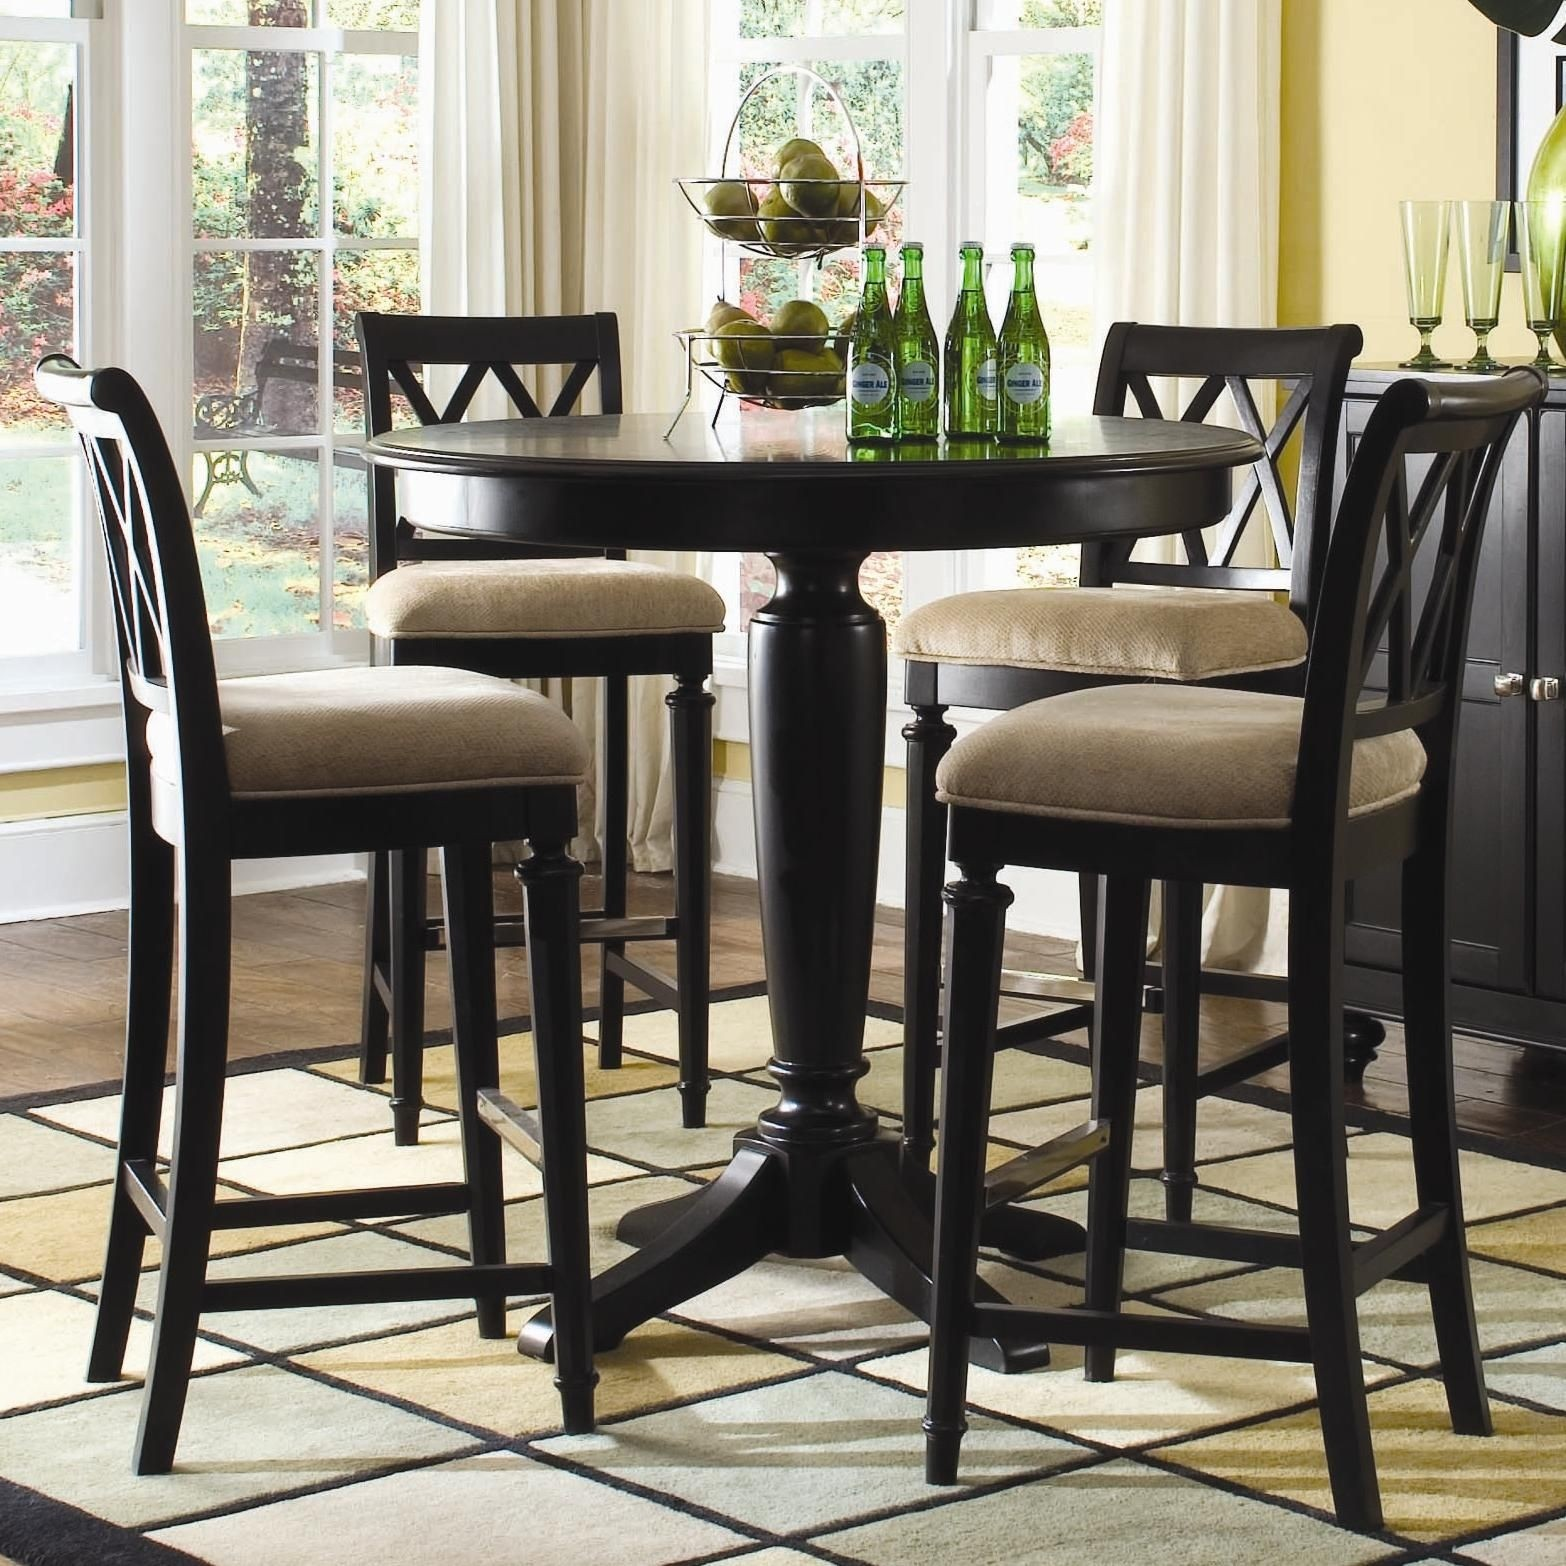 round bar height dining table ideas on foter rh foter com kitchen table and chairs bar height bar height kitchen table with storage